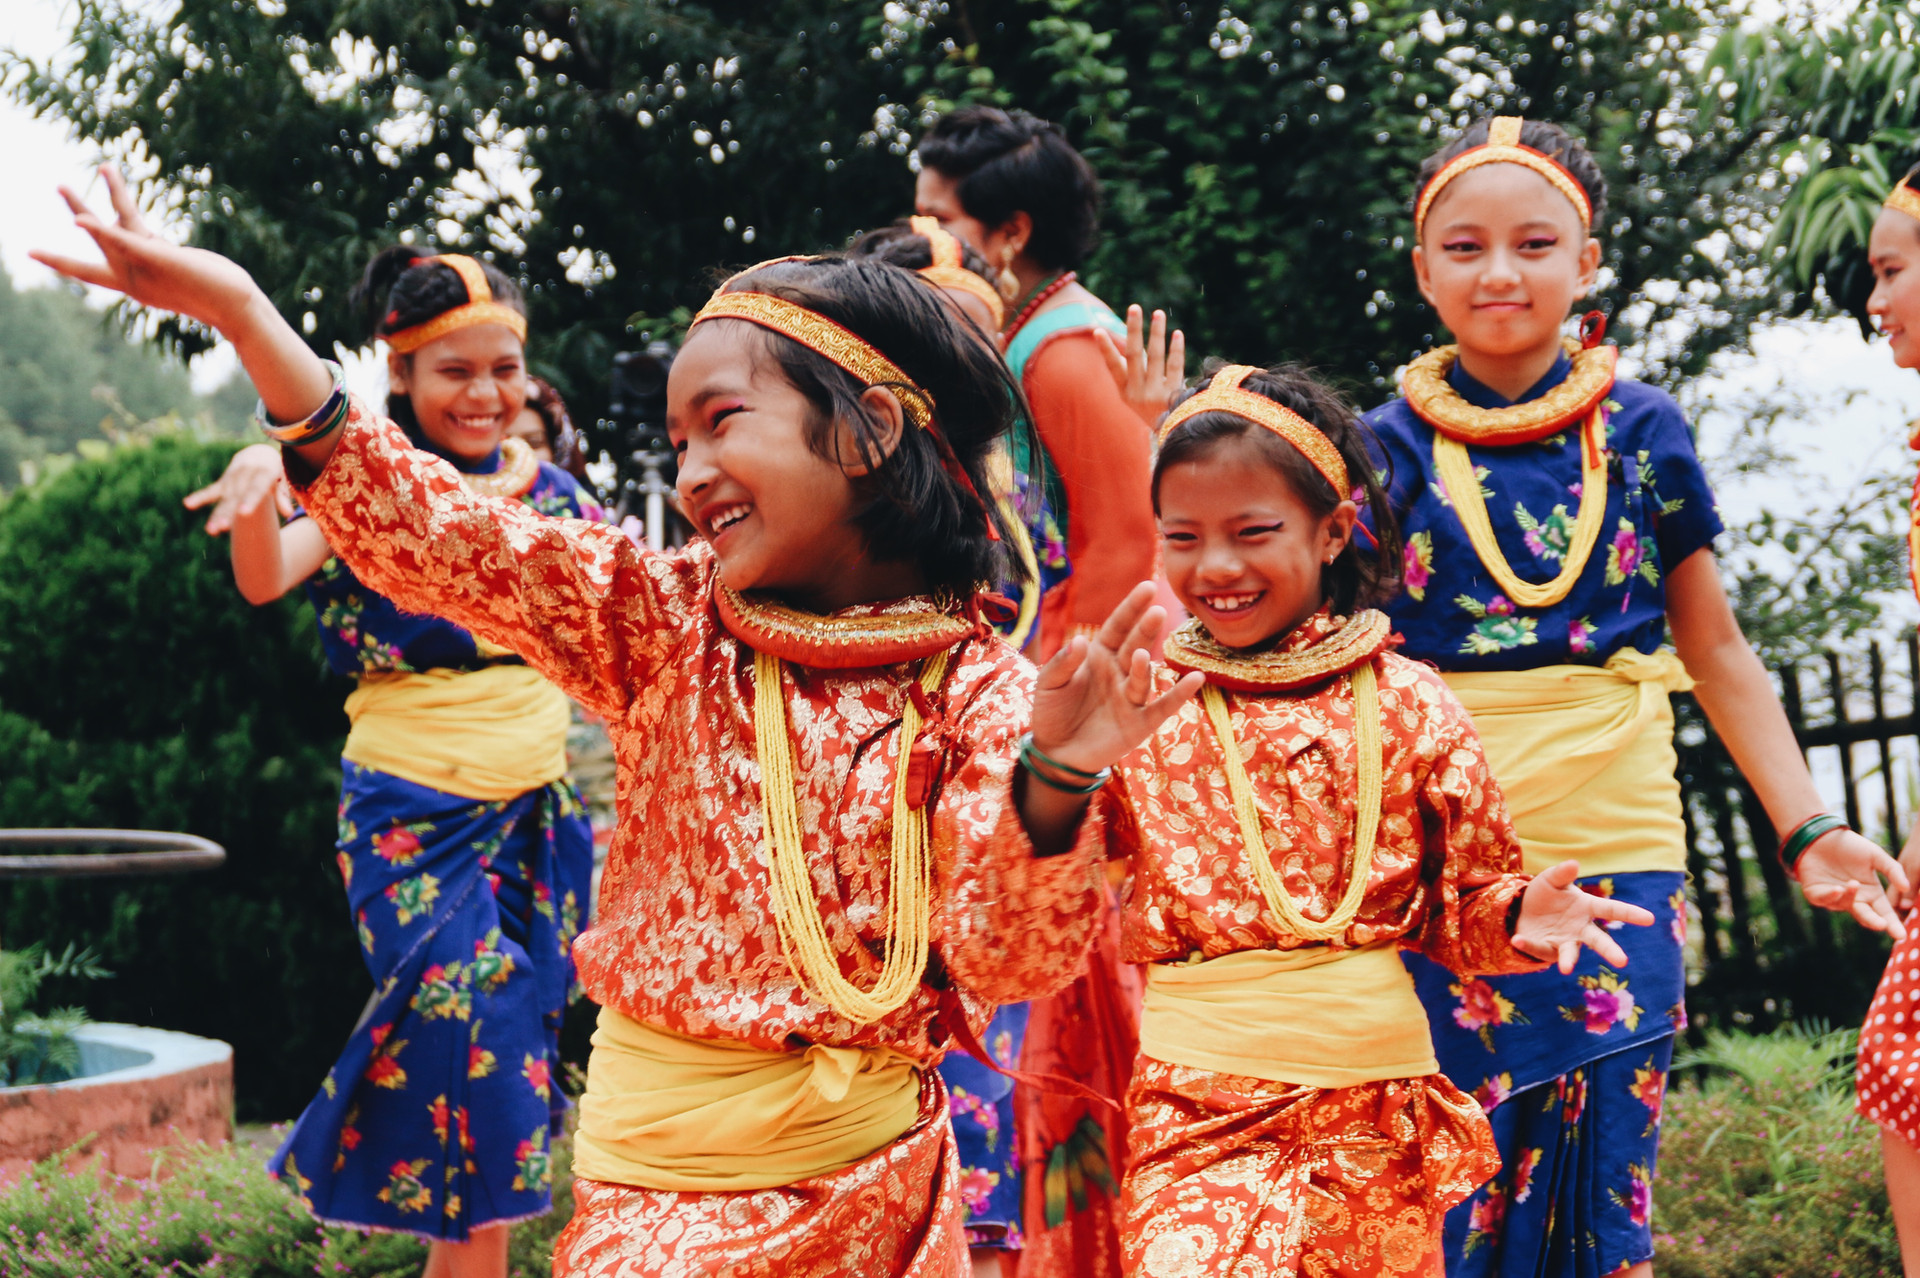 The girls at Raksha, a center in Nepal for young girls who have been sexually abused, dance in celebration of Teej in August, 2017. Teej is a holiday welcoming monsoon season and is mainly celebrated by women and girls. The girls at Raksha dressed up in their nicest outfits and celebrated the day with dance, song, and lots of food.